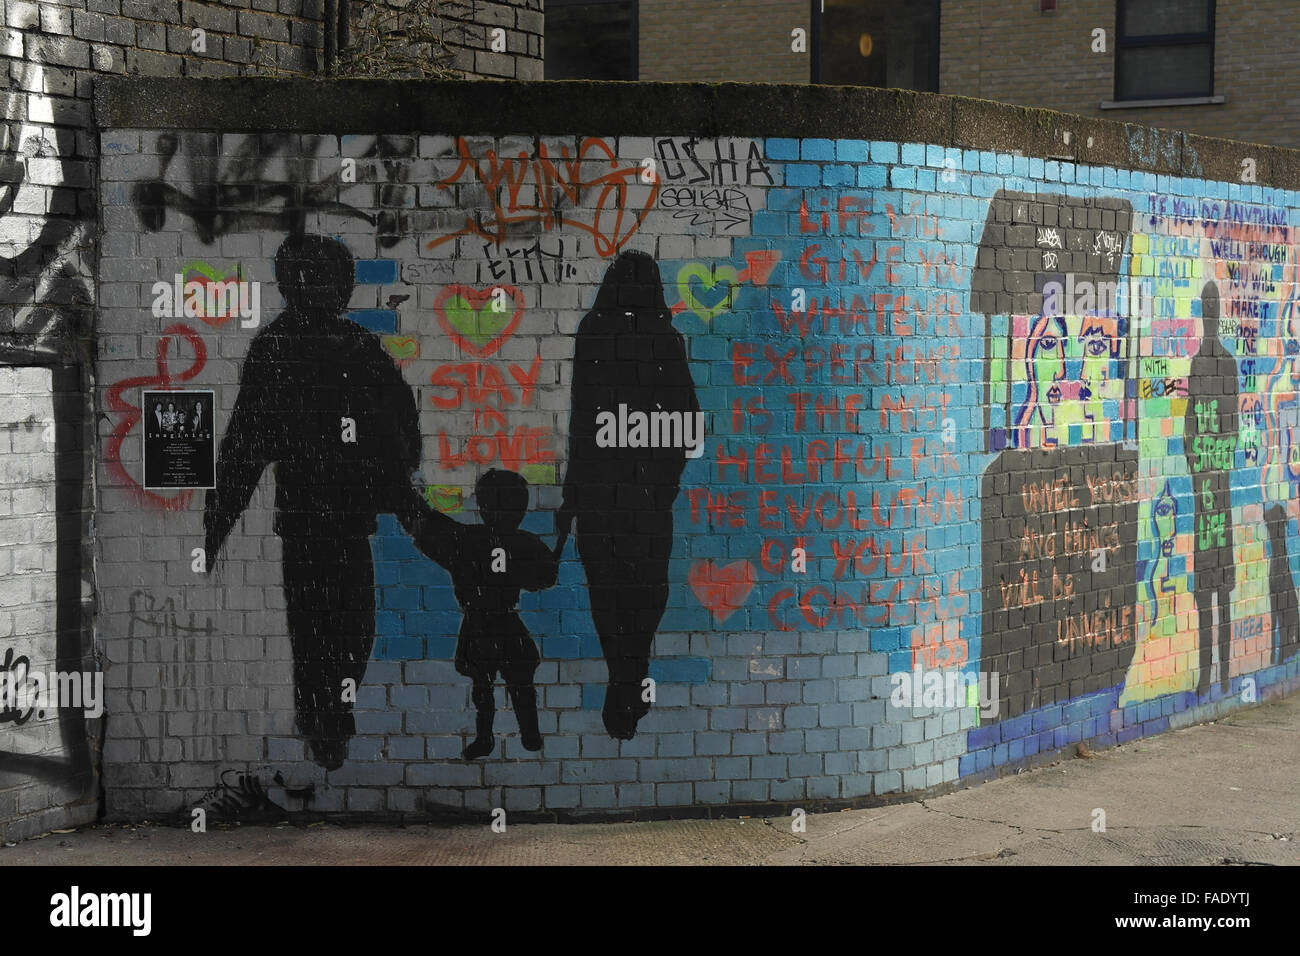 Multi-coloured brick wall with life captions, black stencils man woman holding arms child, Wheler Street, Shoreditch, - Stock Image